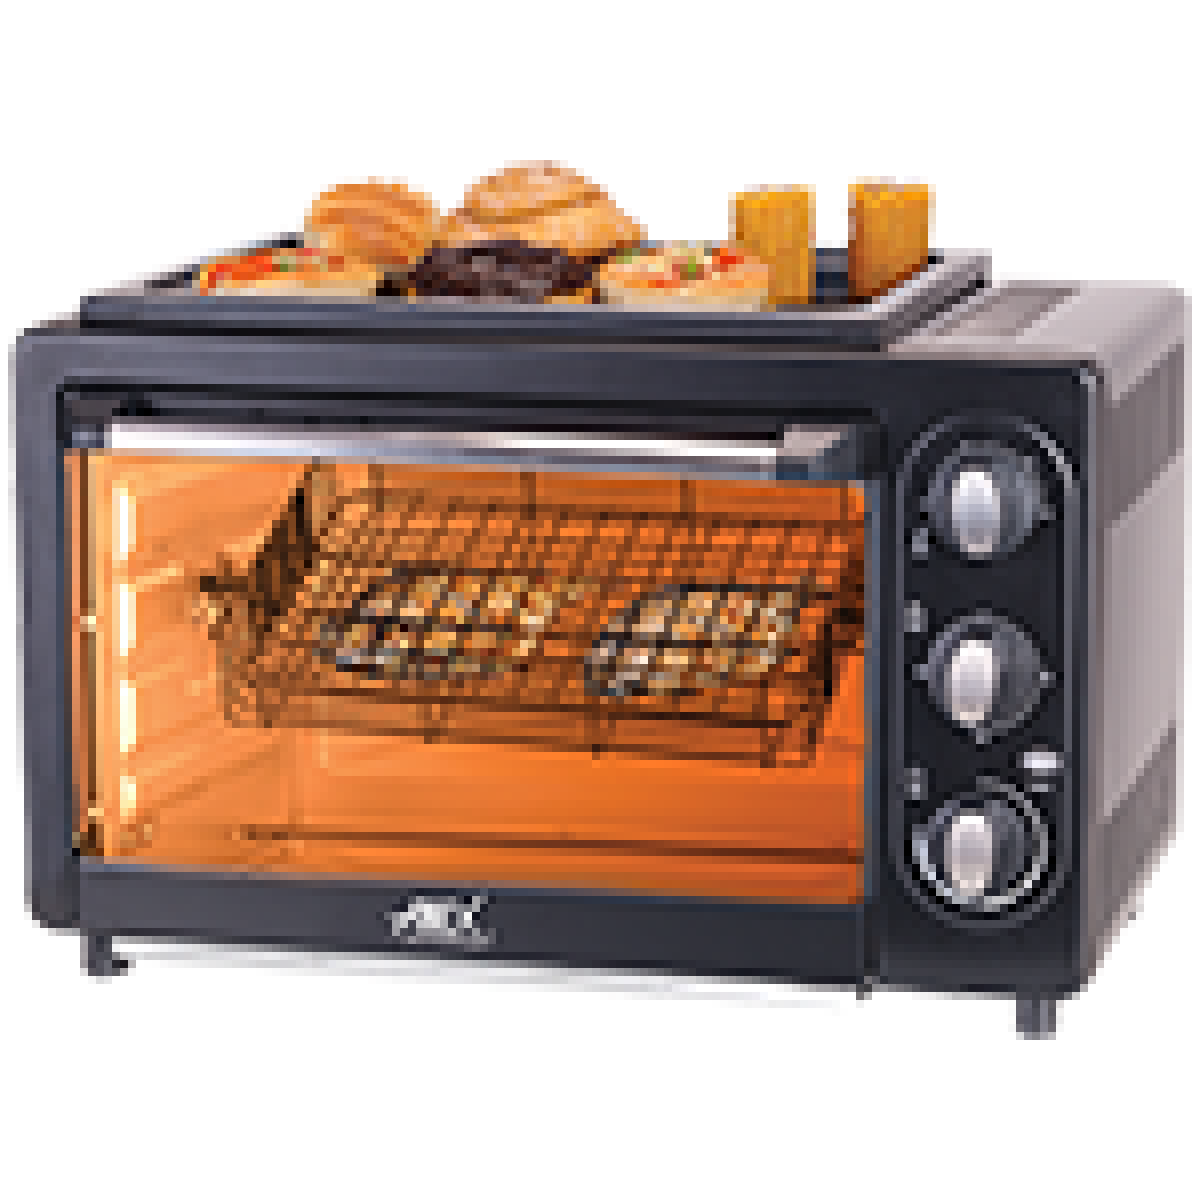 Anex Baking Oven Price In Pakistan 2019 New Model Rates Color